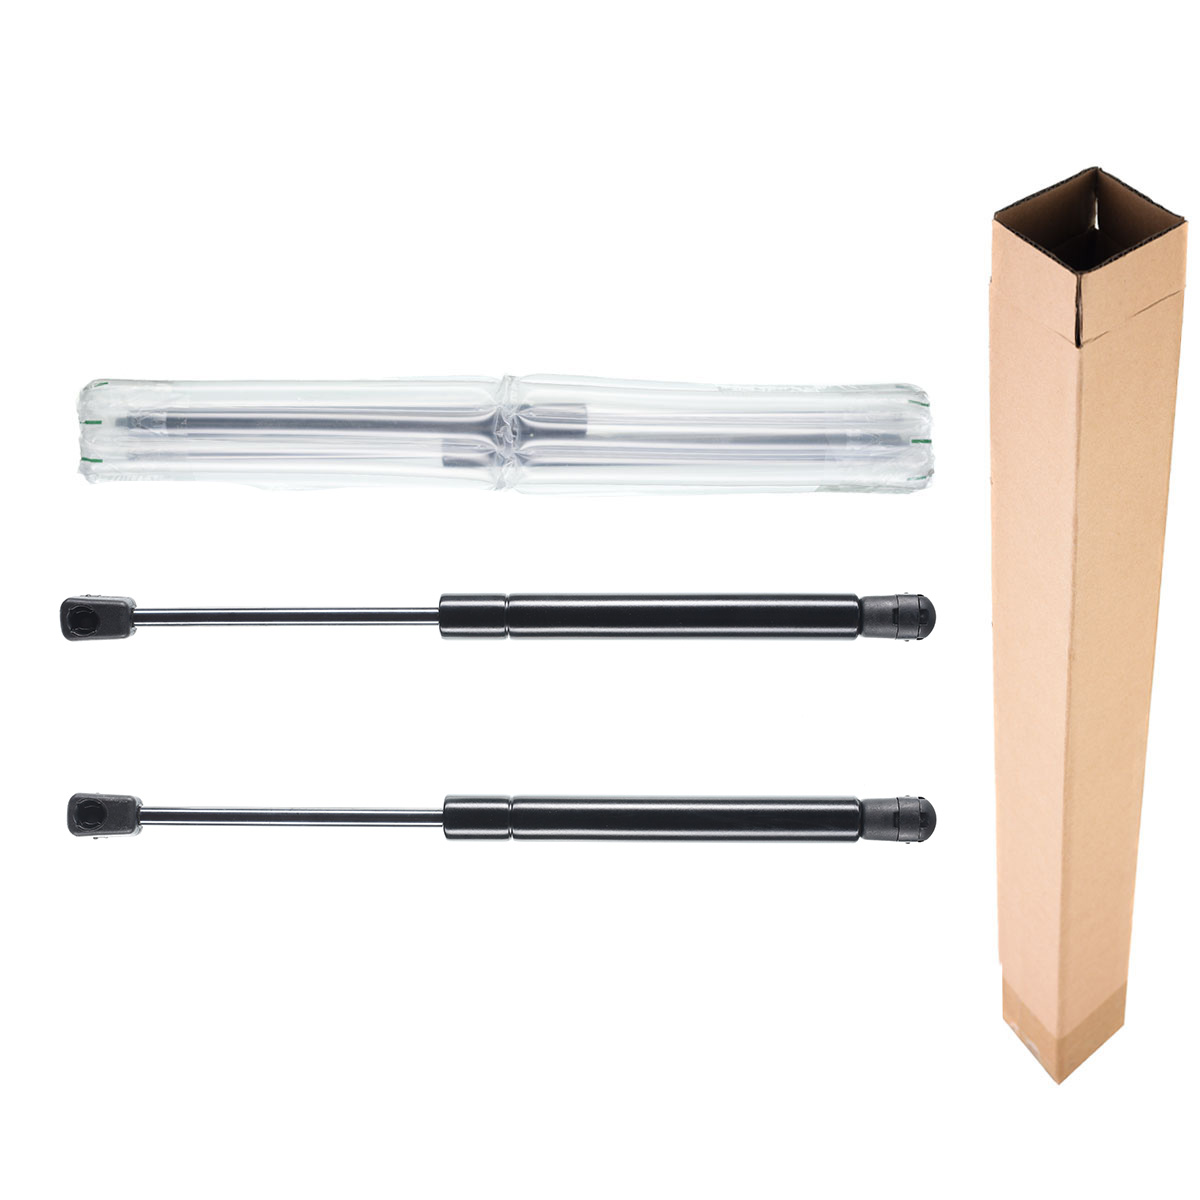 Universal 12 30lbs 10mm Ball Socket Gas Charged Lift Supports Shock Gas Struts 4420 133N 12.00 Inches 8.10 Inches